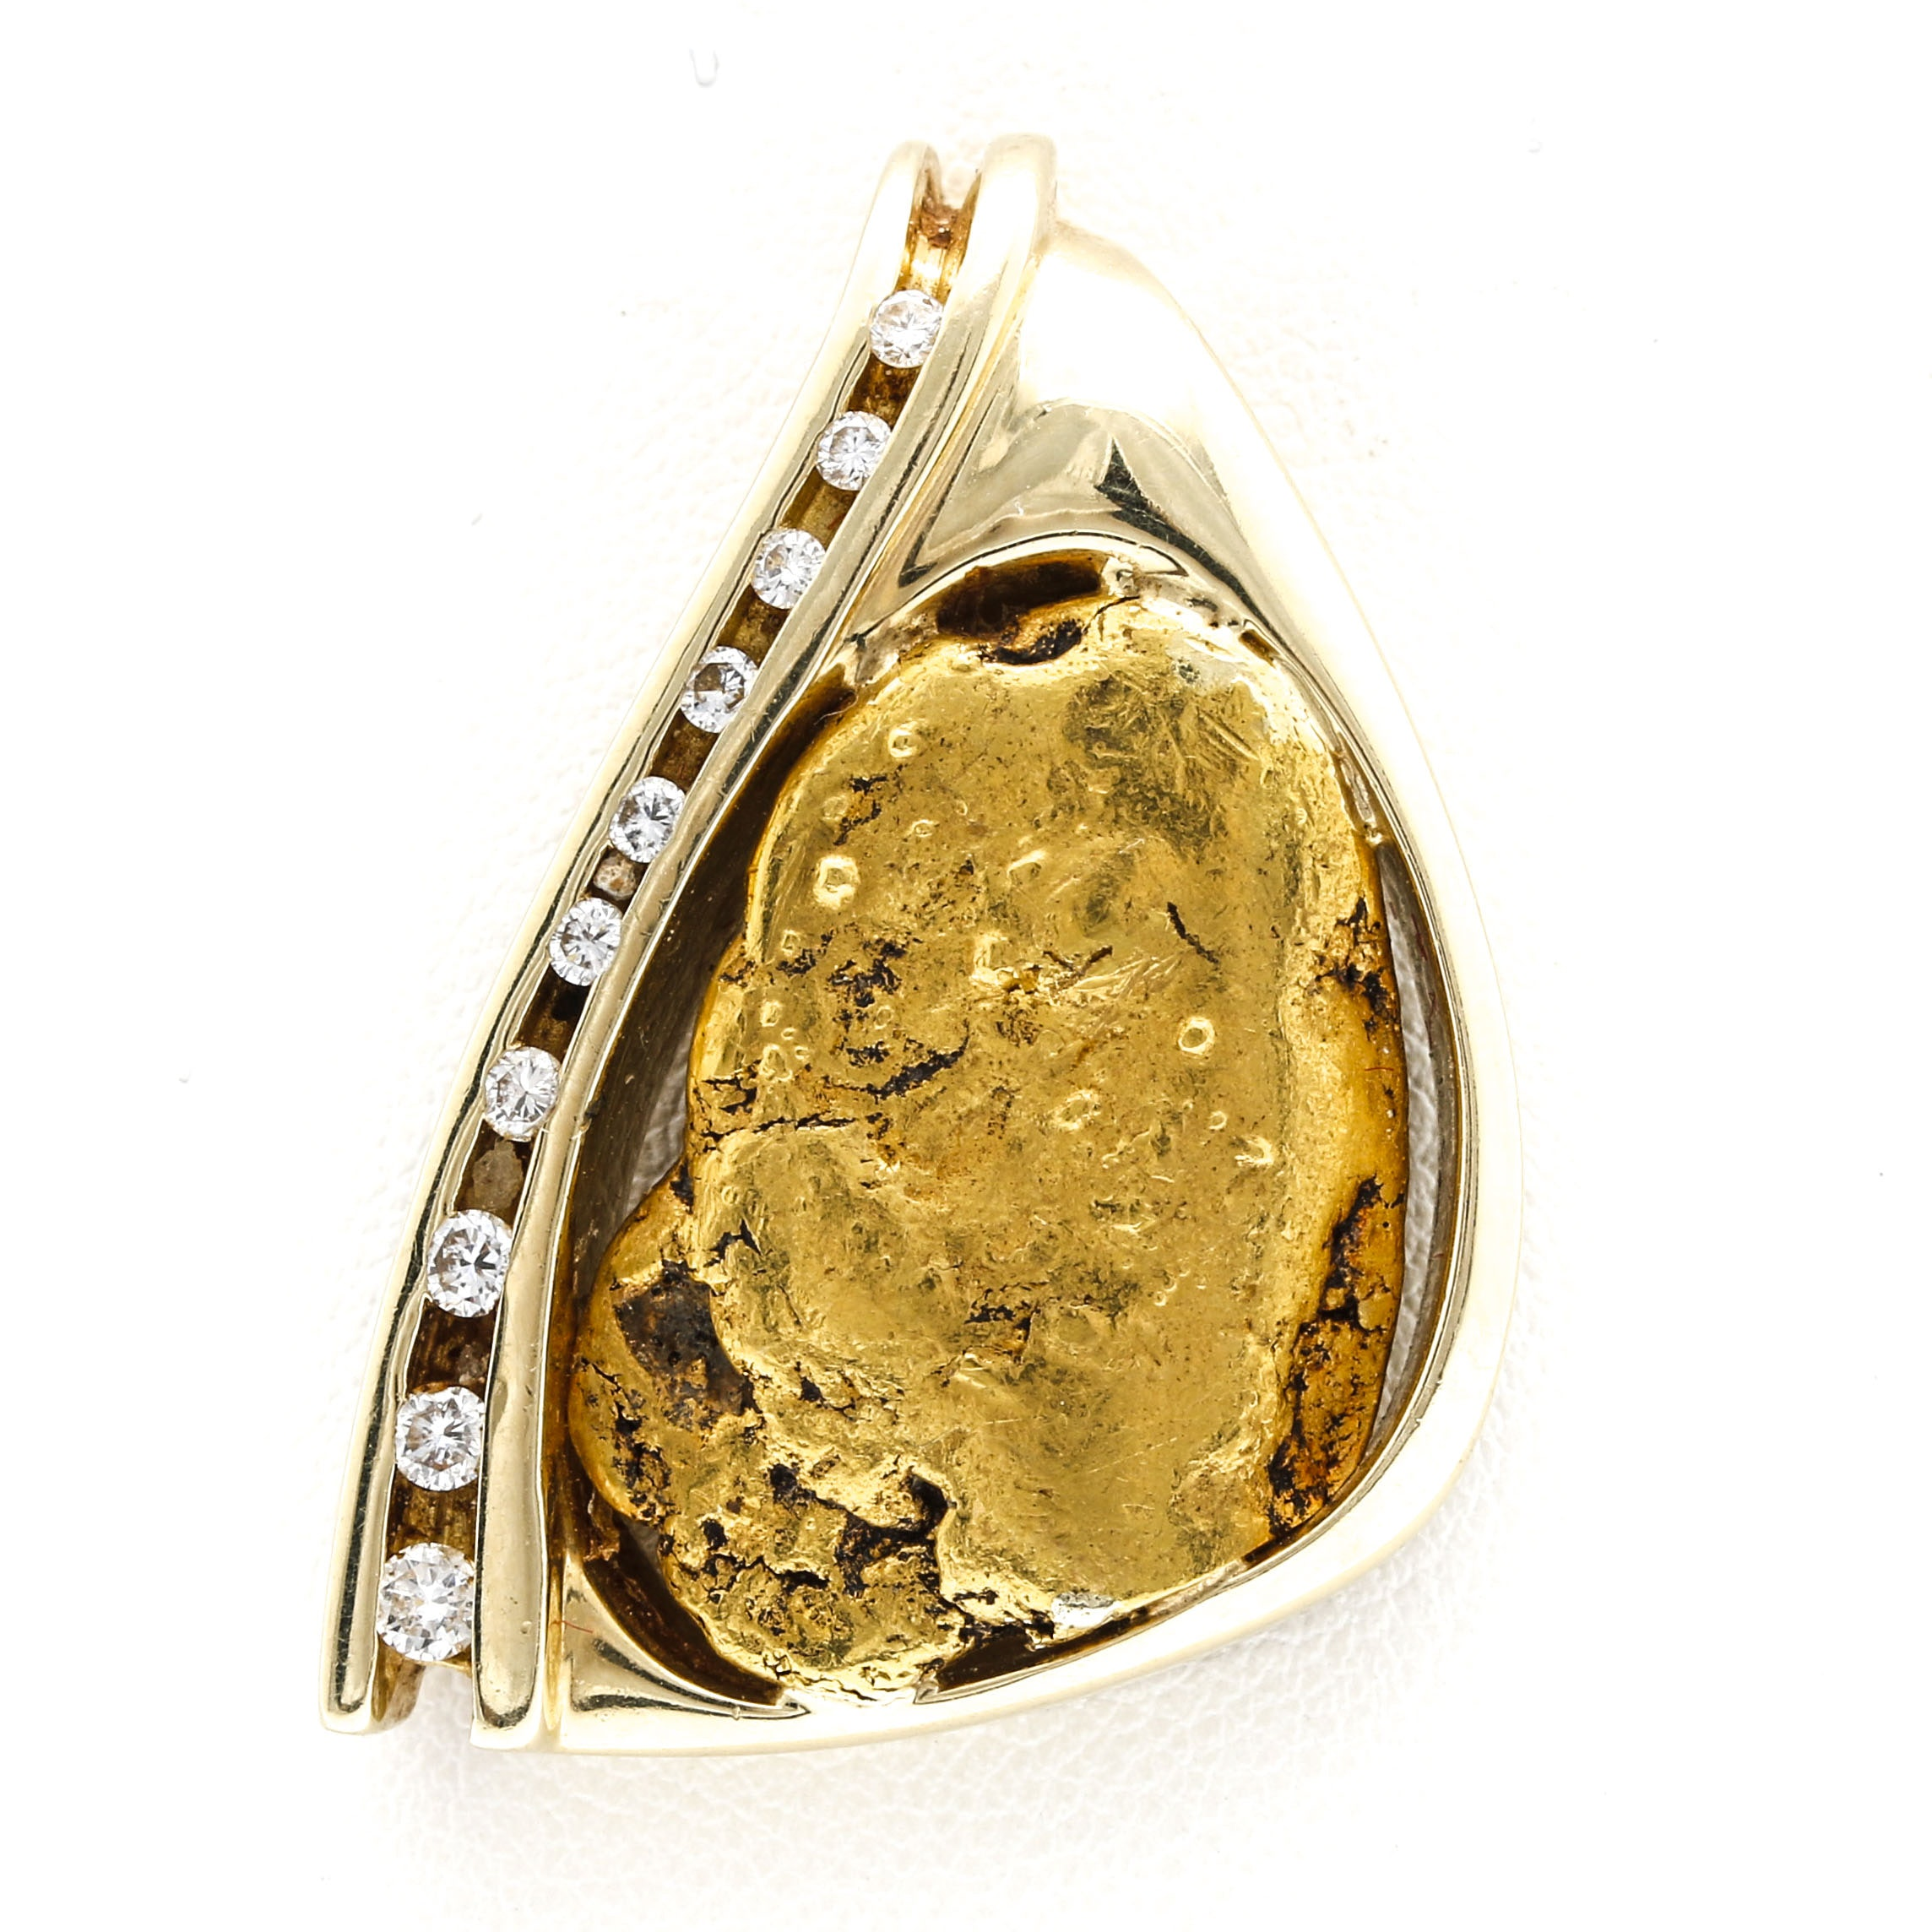 14K Yellow Gold Pendant with 20K Yellow Gold Nugget and Diamonds